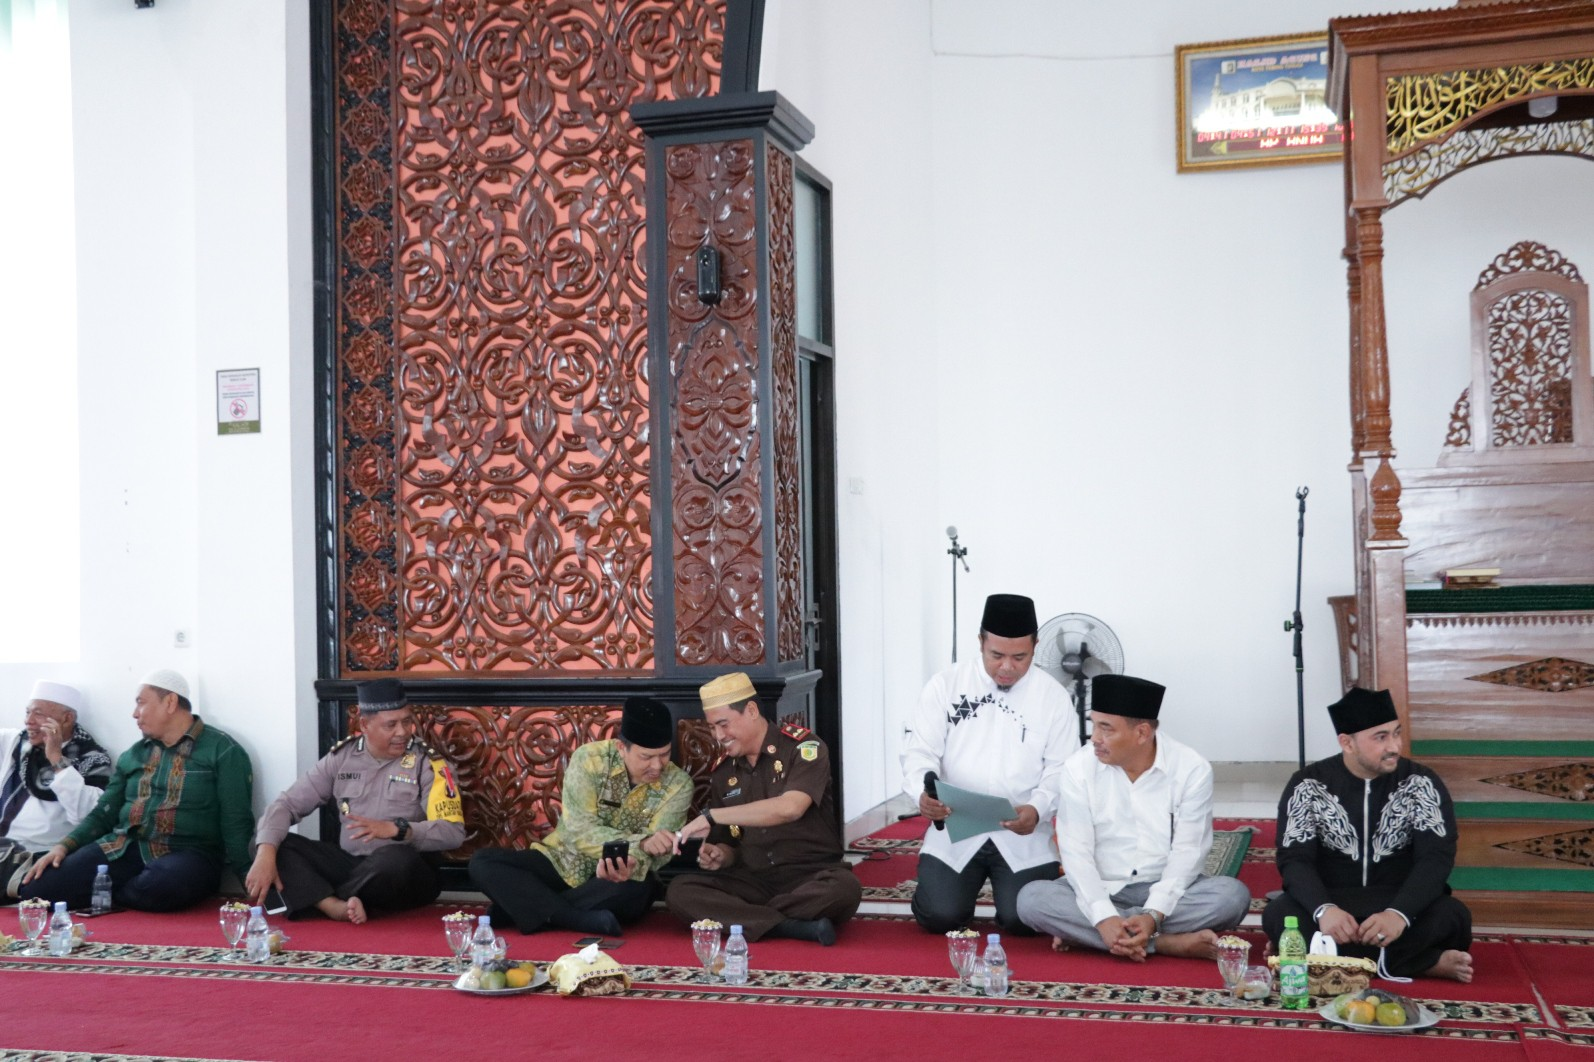 /photos/shares/berita_foto/november/MAULID NABI/IMG_5738.JPG